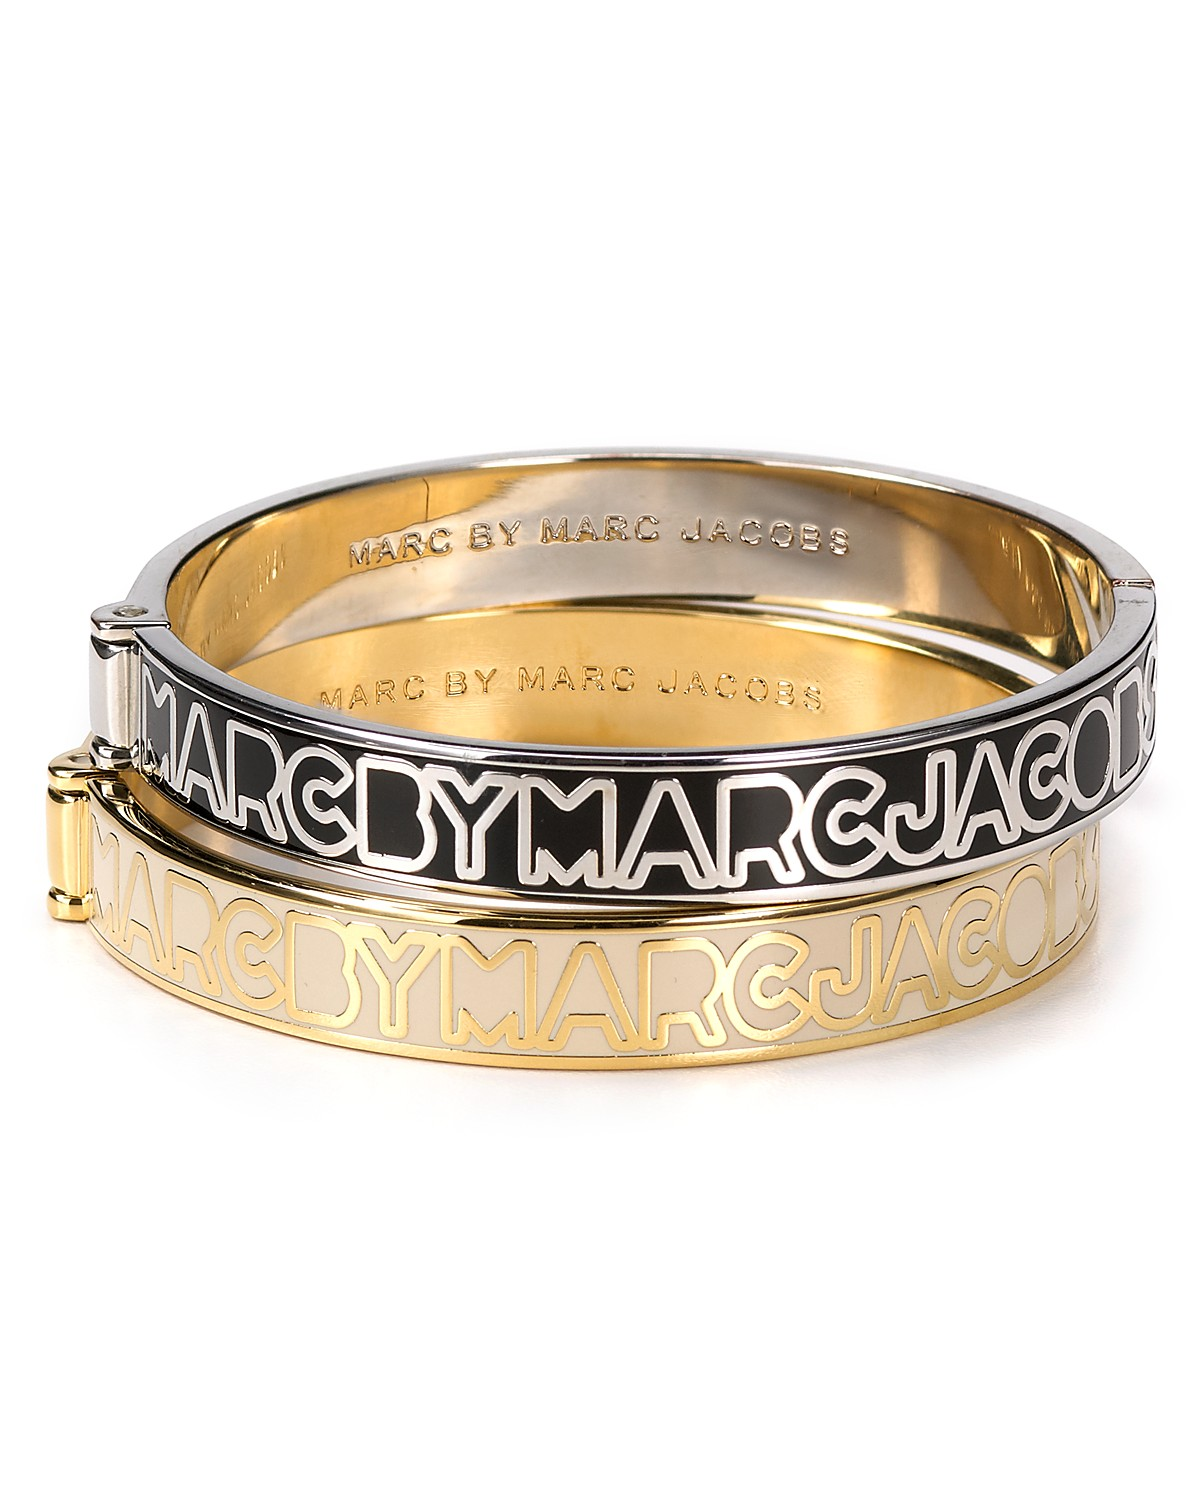 MARC BY MARC JACOBS Skinny Bangle | Bloomingdale's